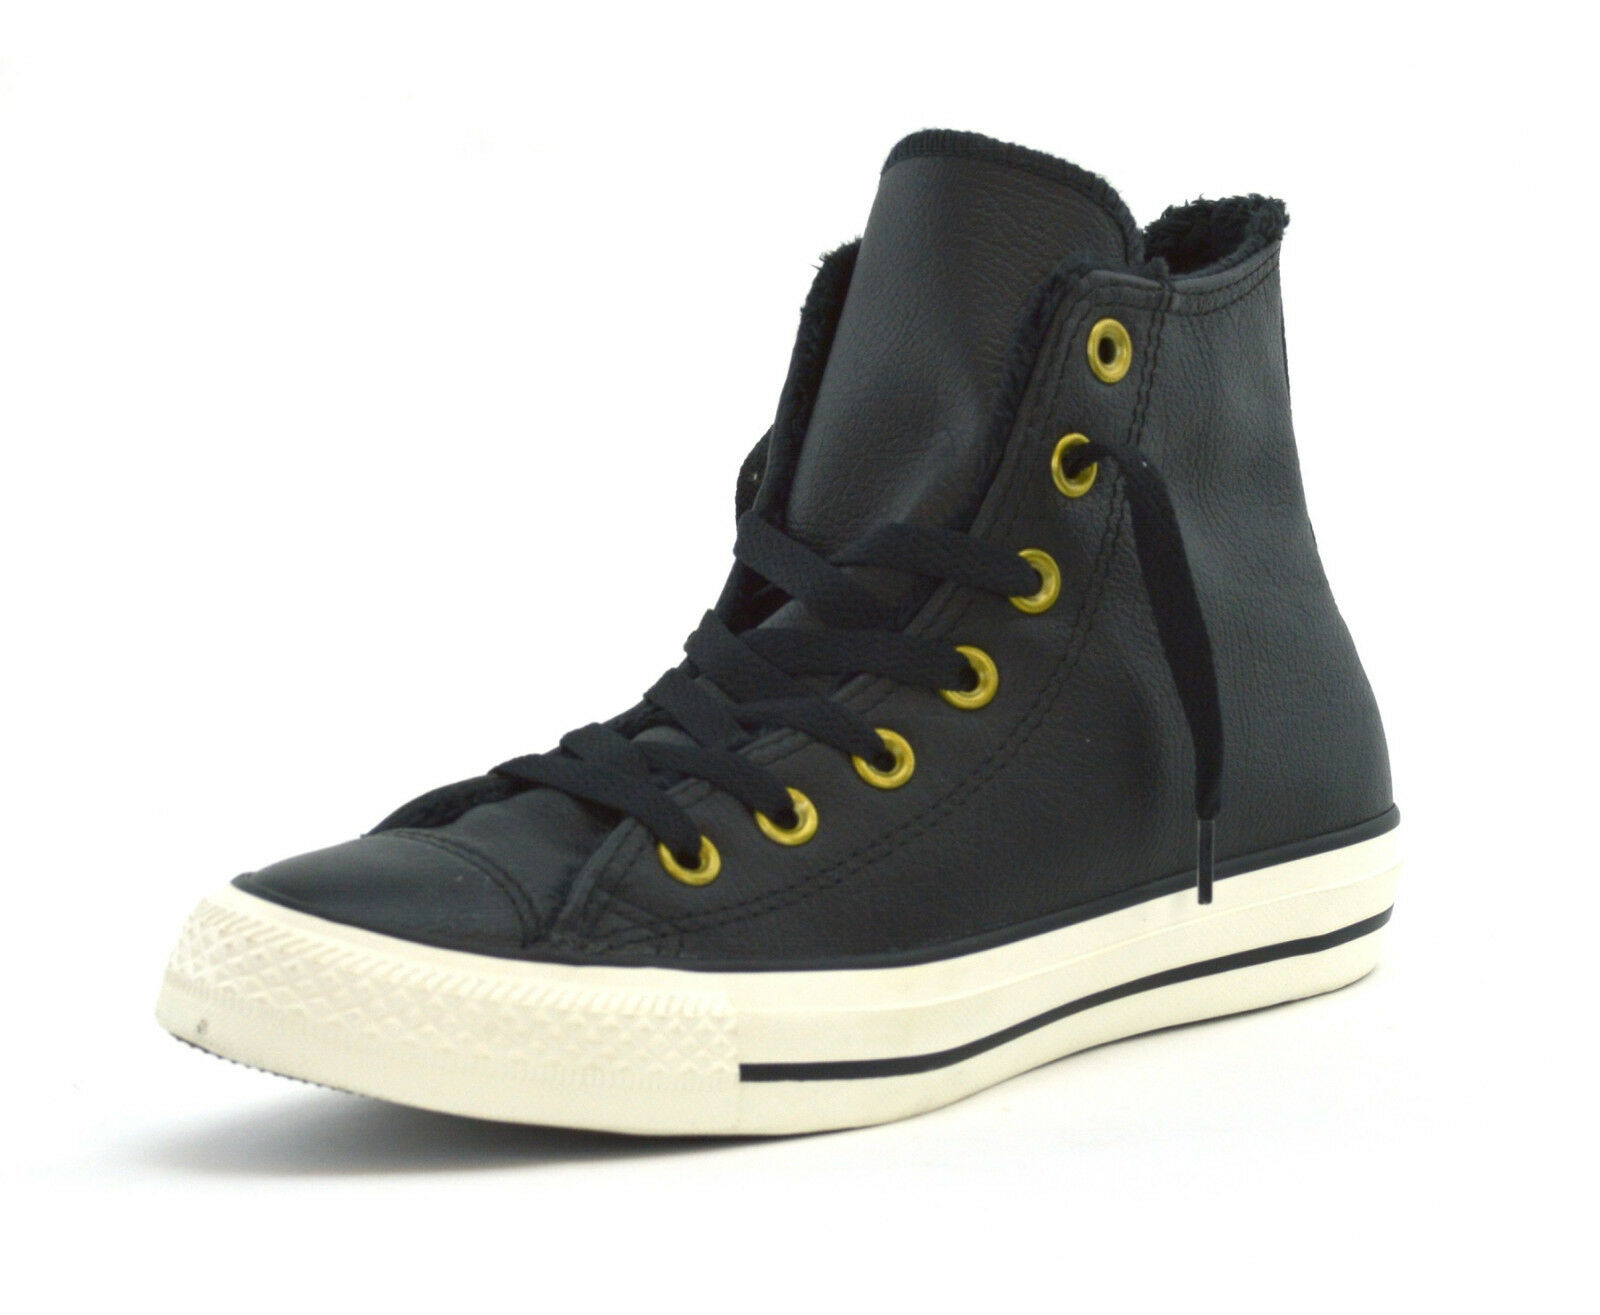 312edd01e8f30a Converse Chuck Taylor All Star Hi Black Women Leather High-top ...